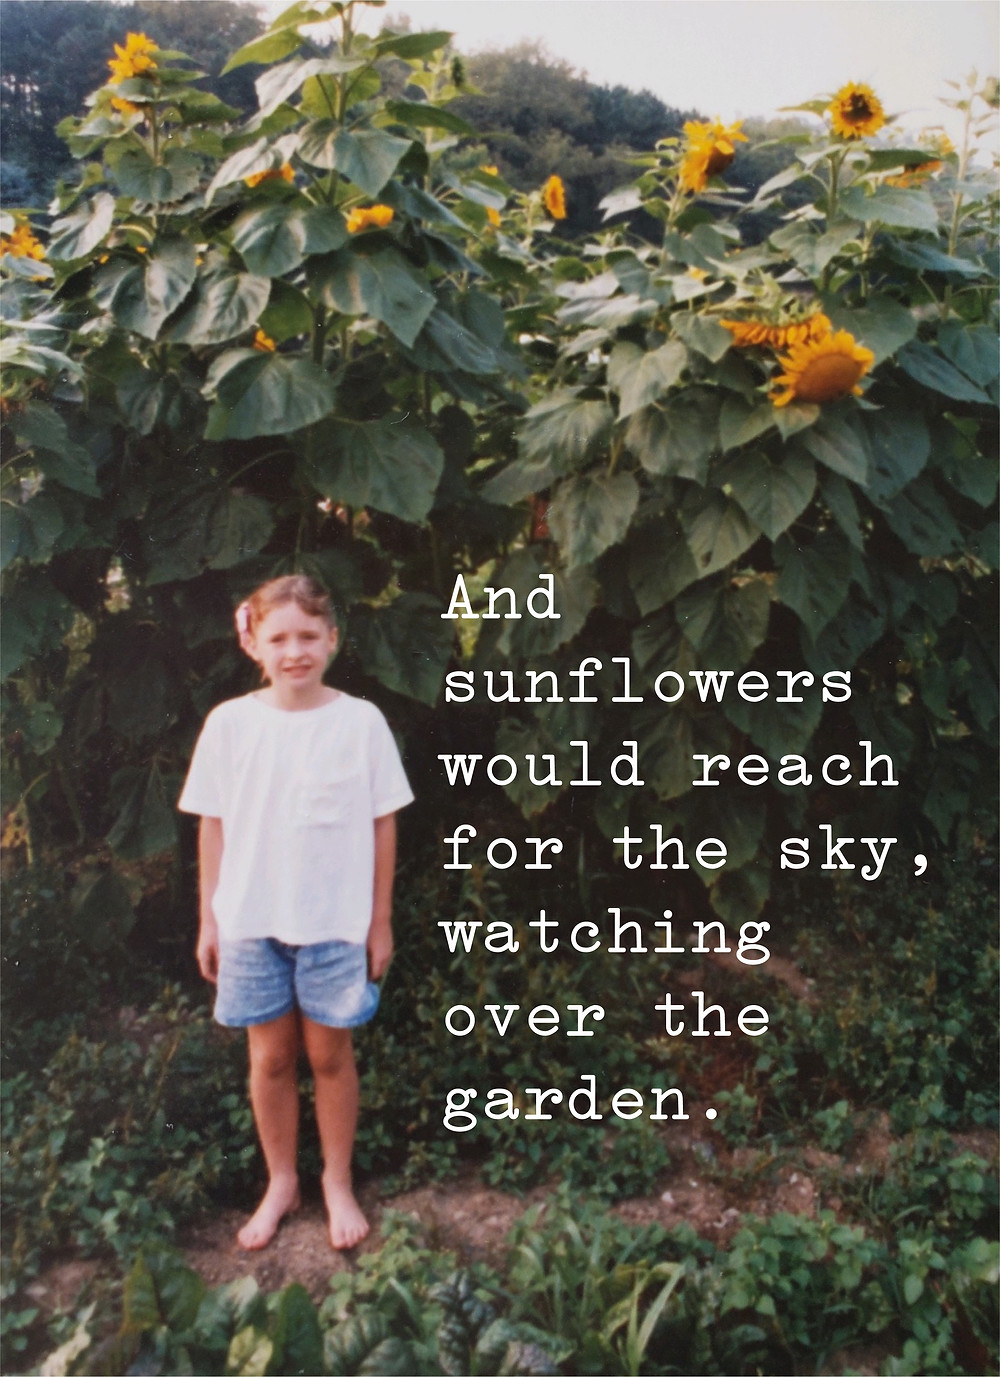 The author, age 6, and the towering sunflowers above and chard below. The hills of western Pennsylvania in the background.